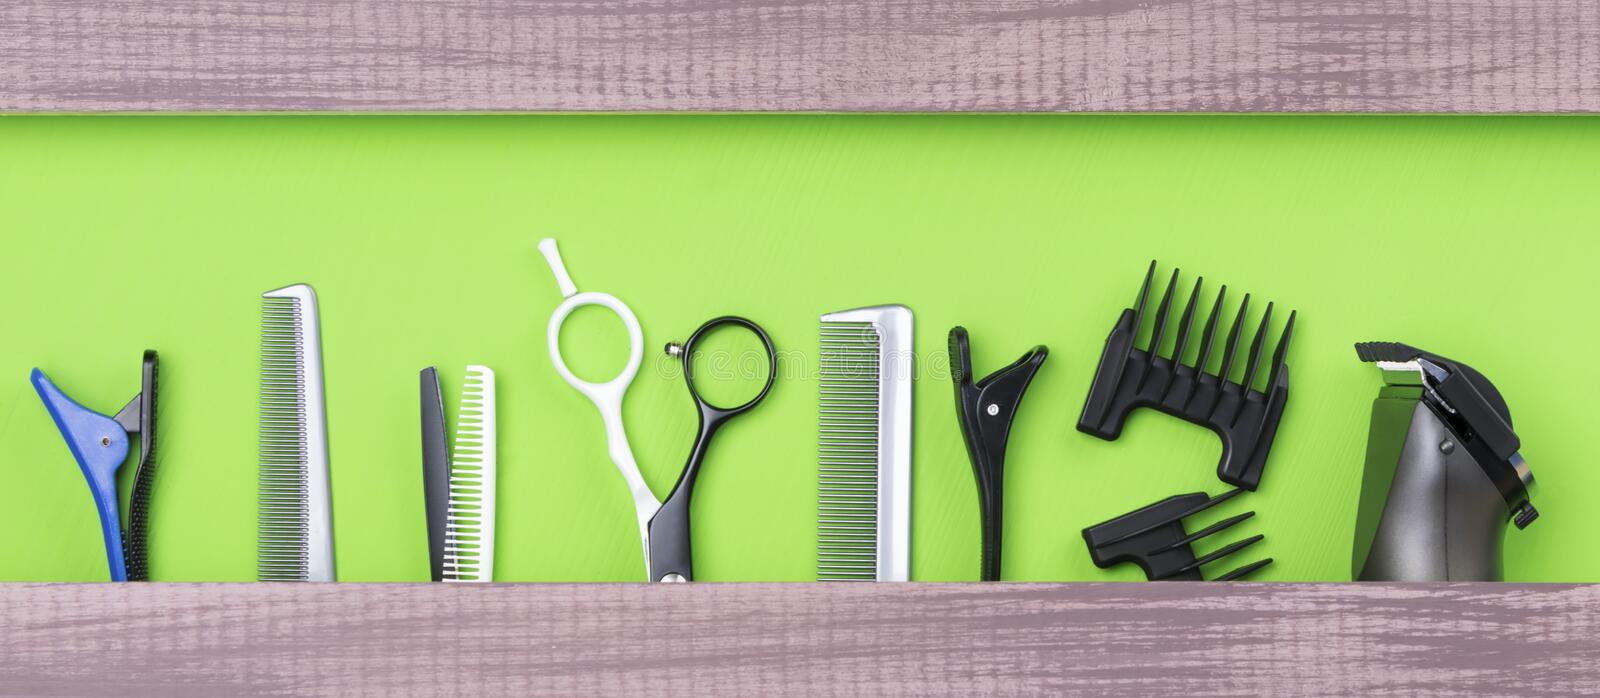 Large set of hair stylist for cutting hair on a green background royalty free stock image